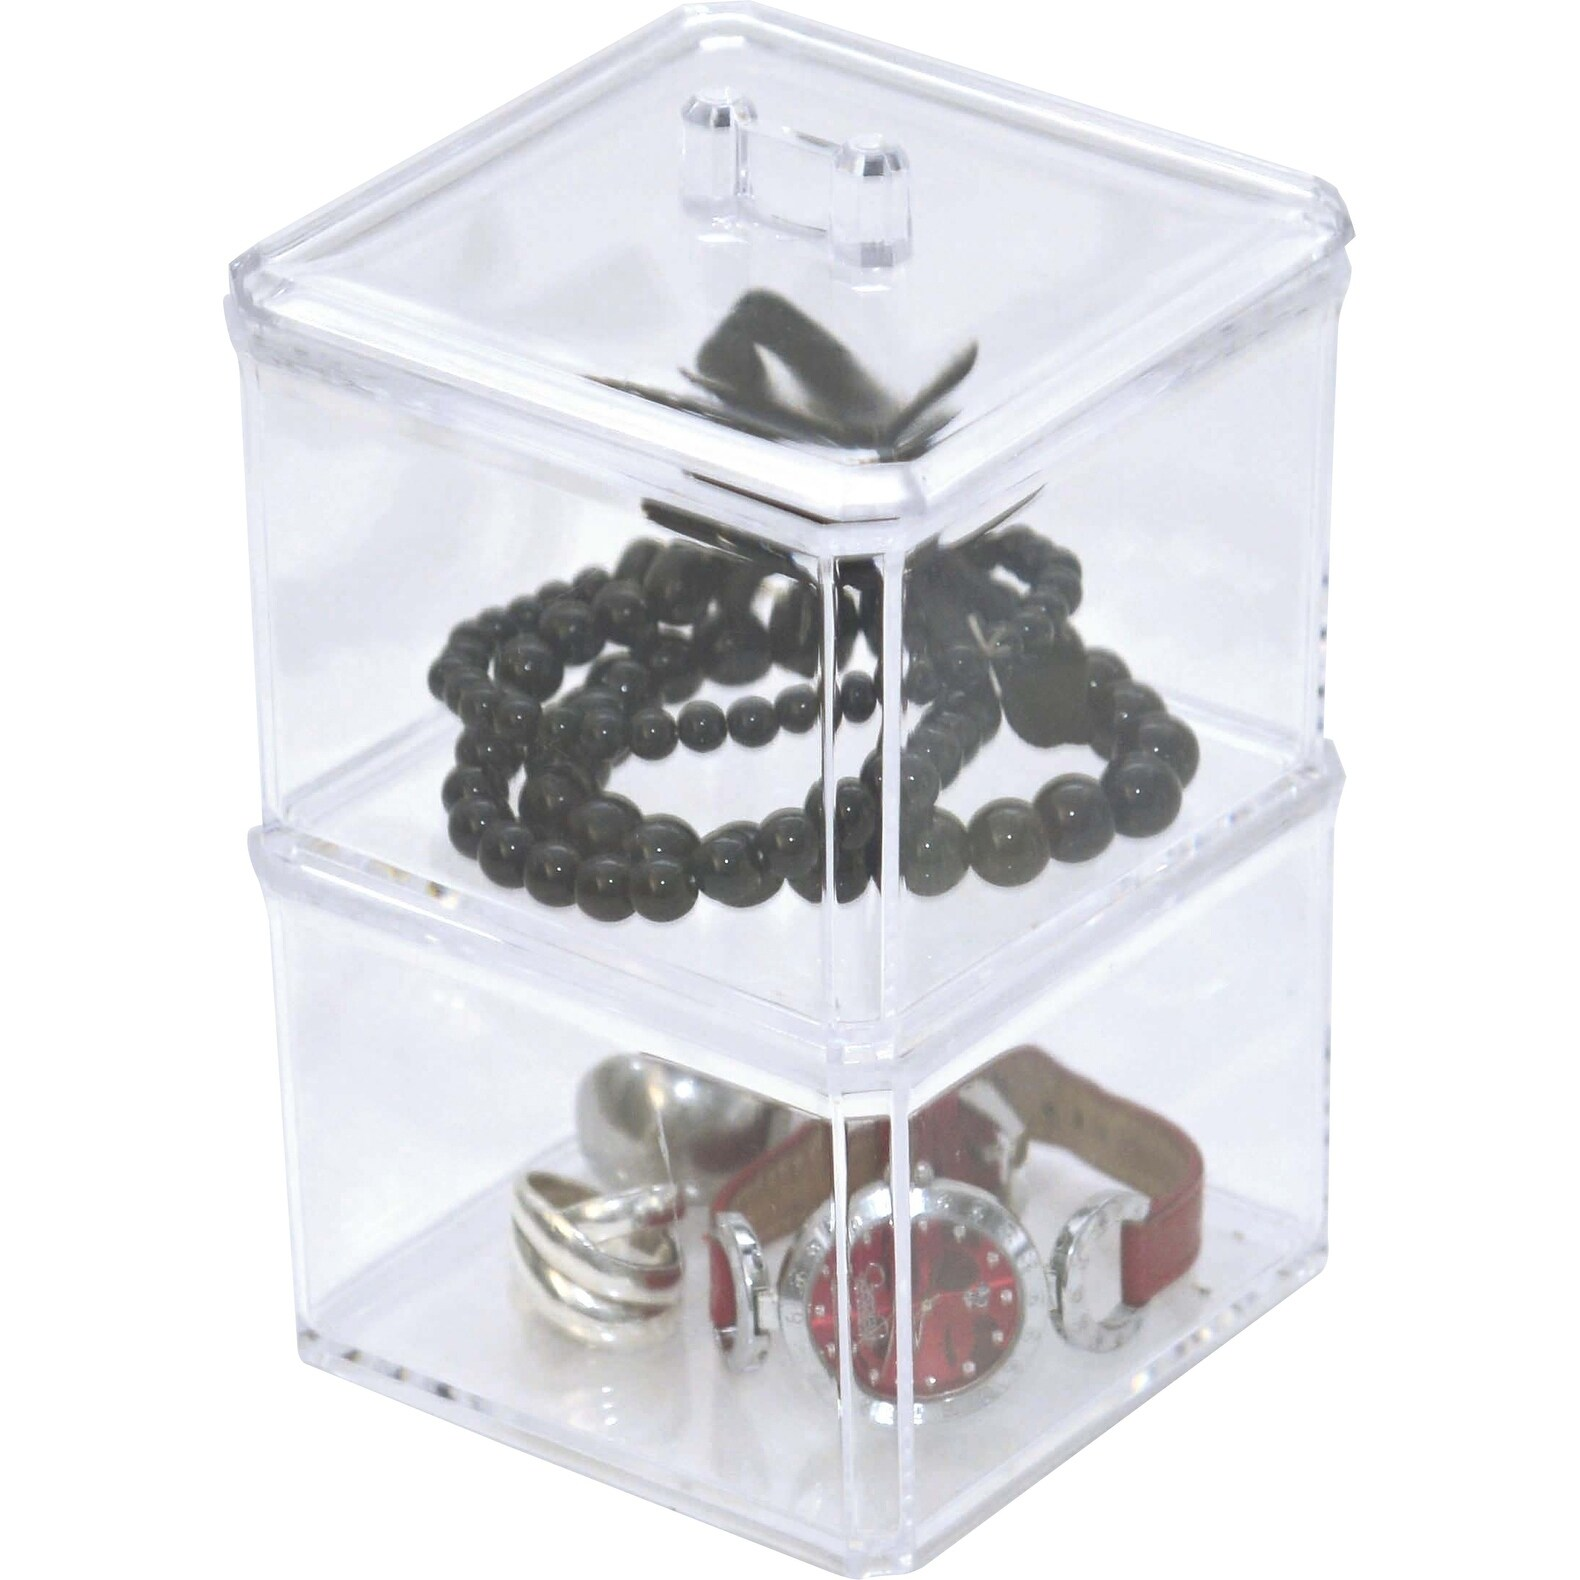 e3d83fb0a990 Evideco BOREAL Cosmetic Storage Display 2 Stacked Boxes with Cover Clear